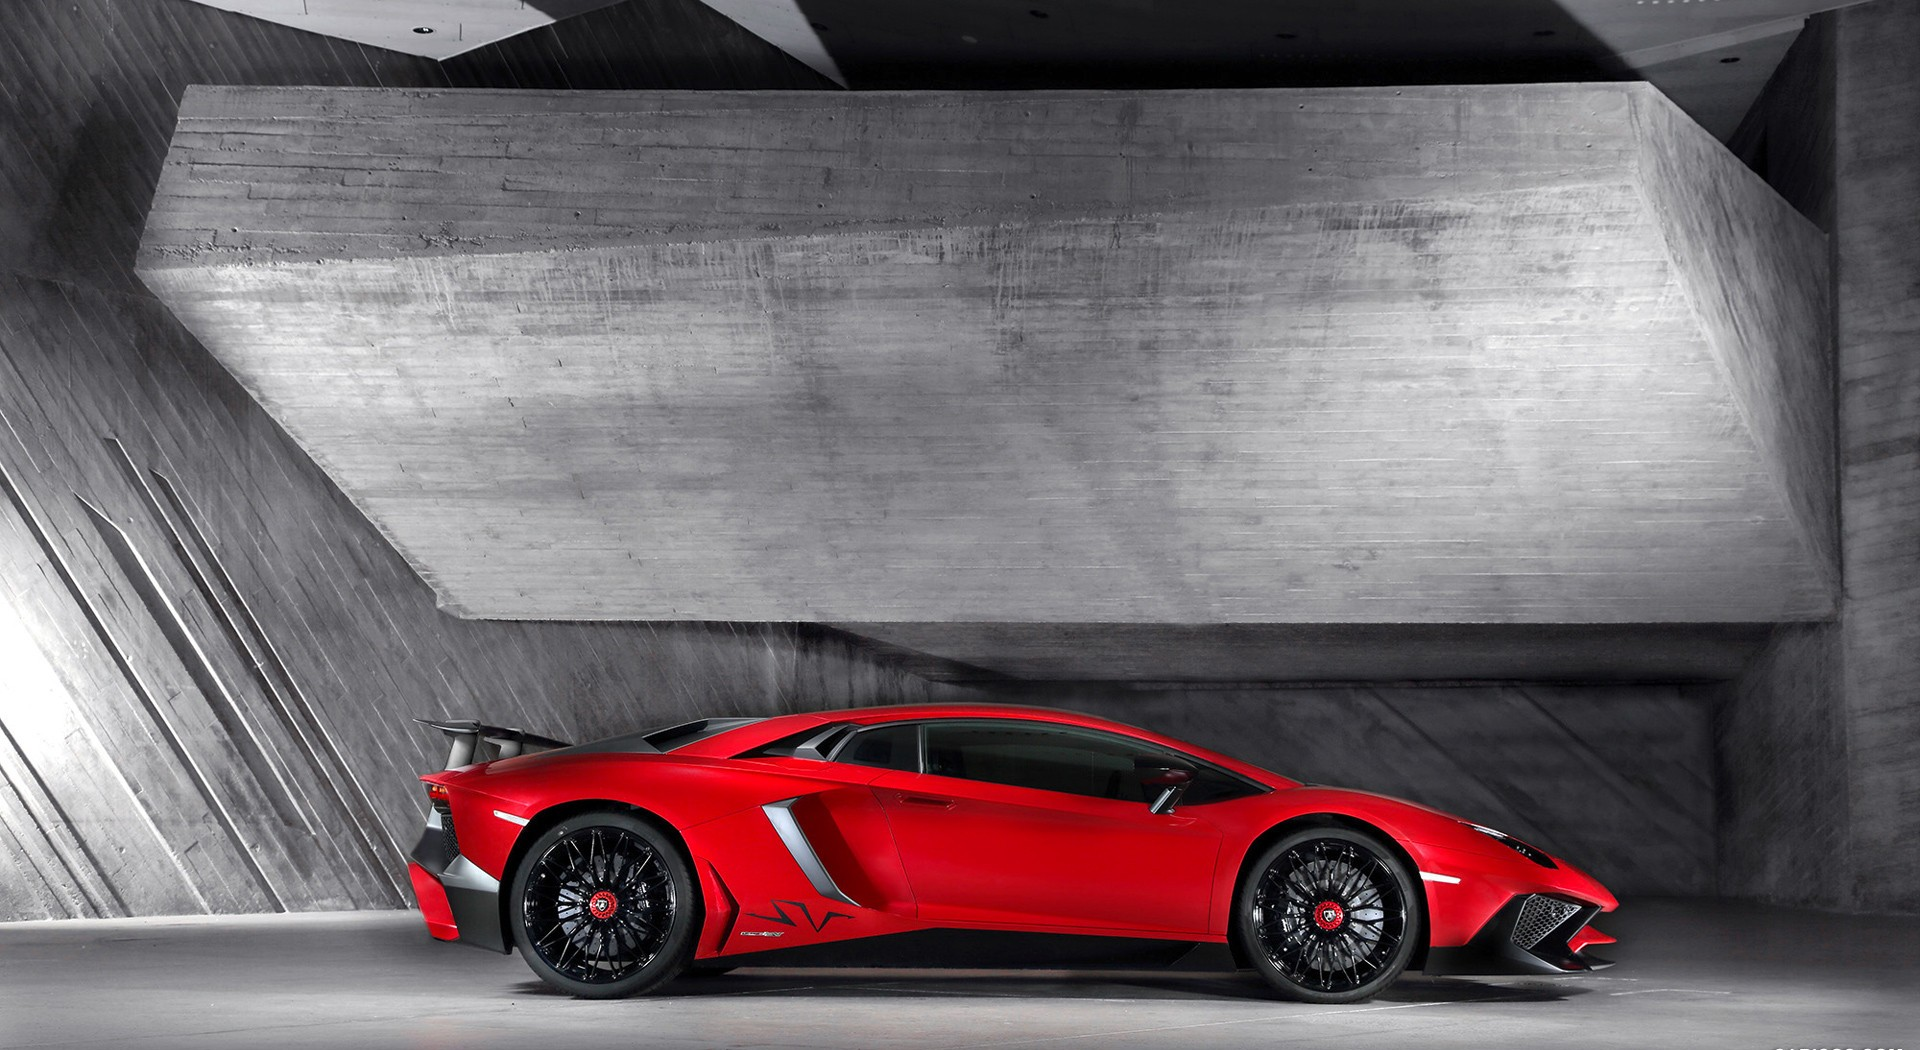 lamborghini aventador superveloce HD wallpaper